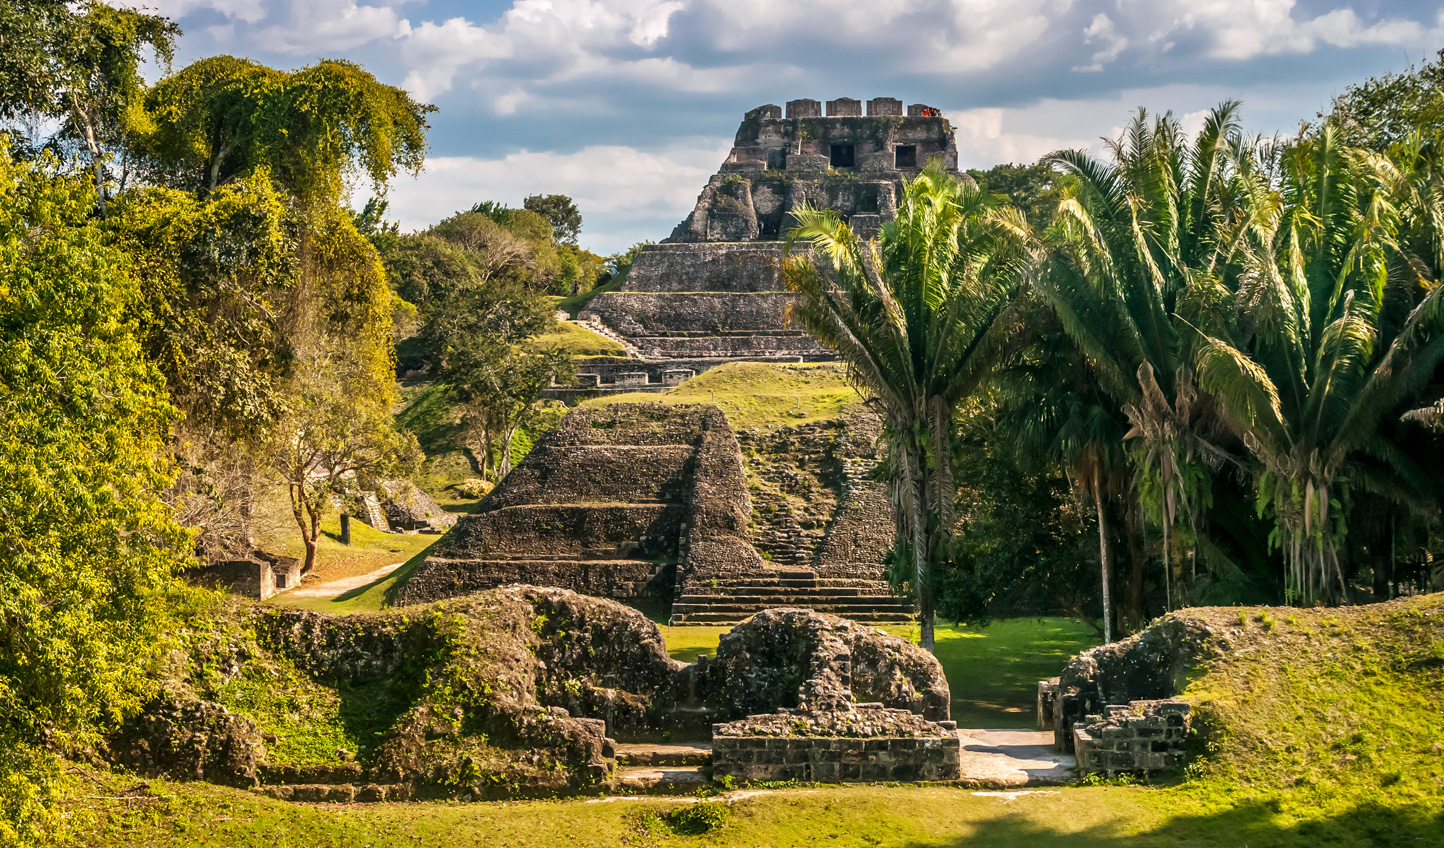 Marvel at the wonder of Xunantunich